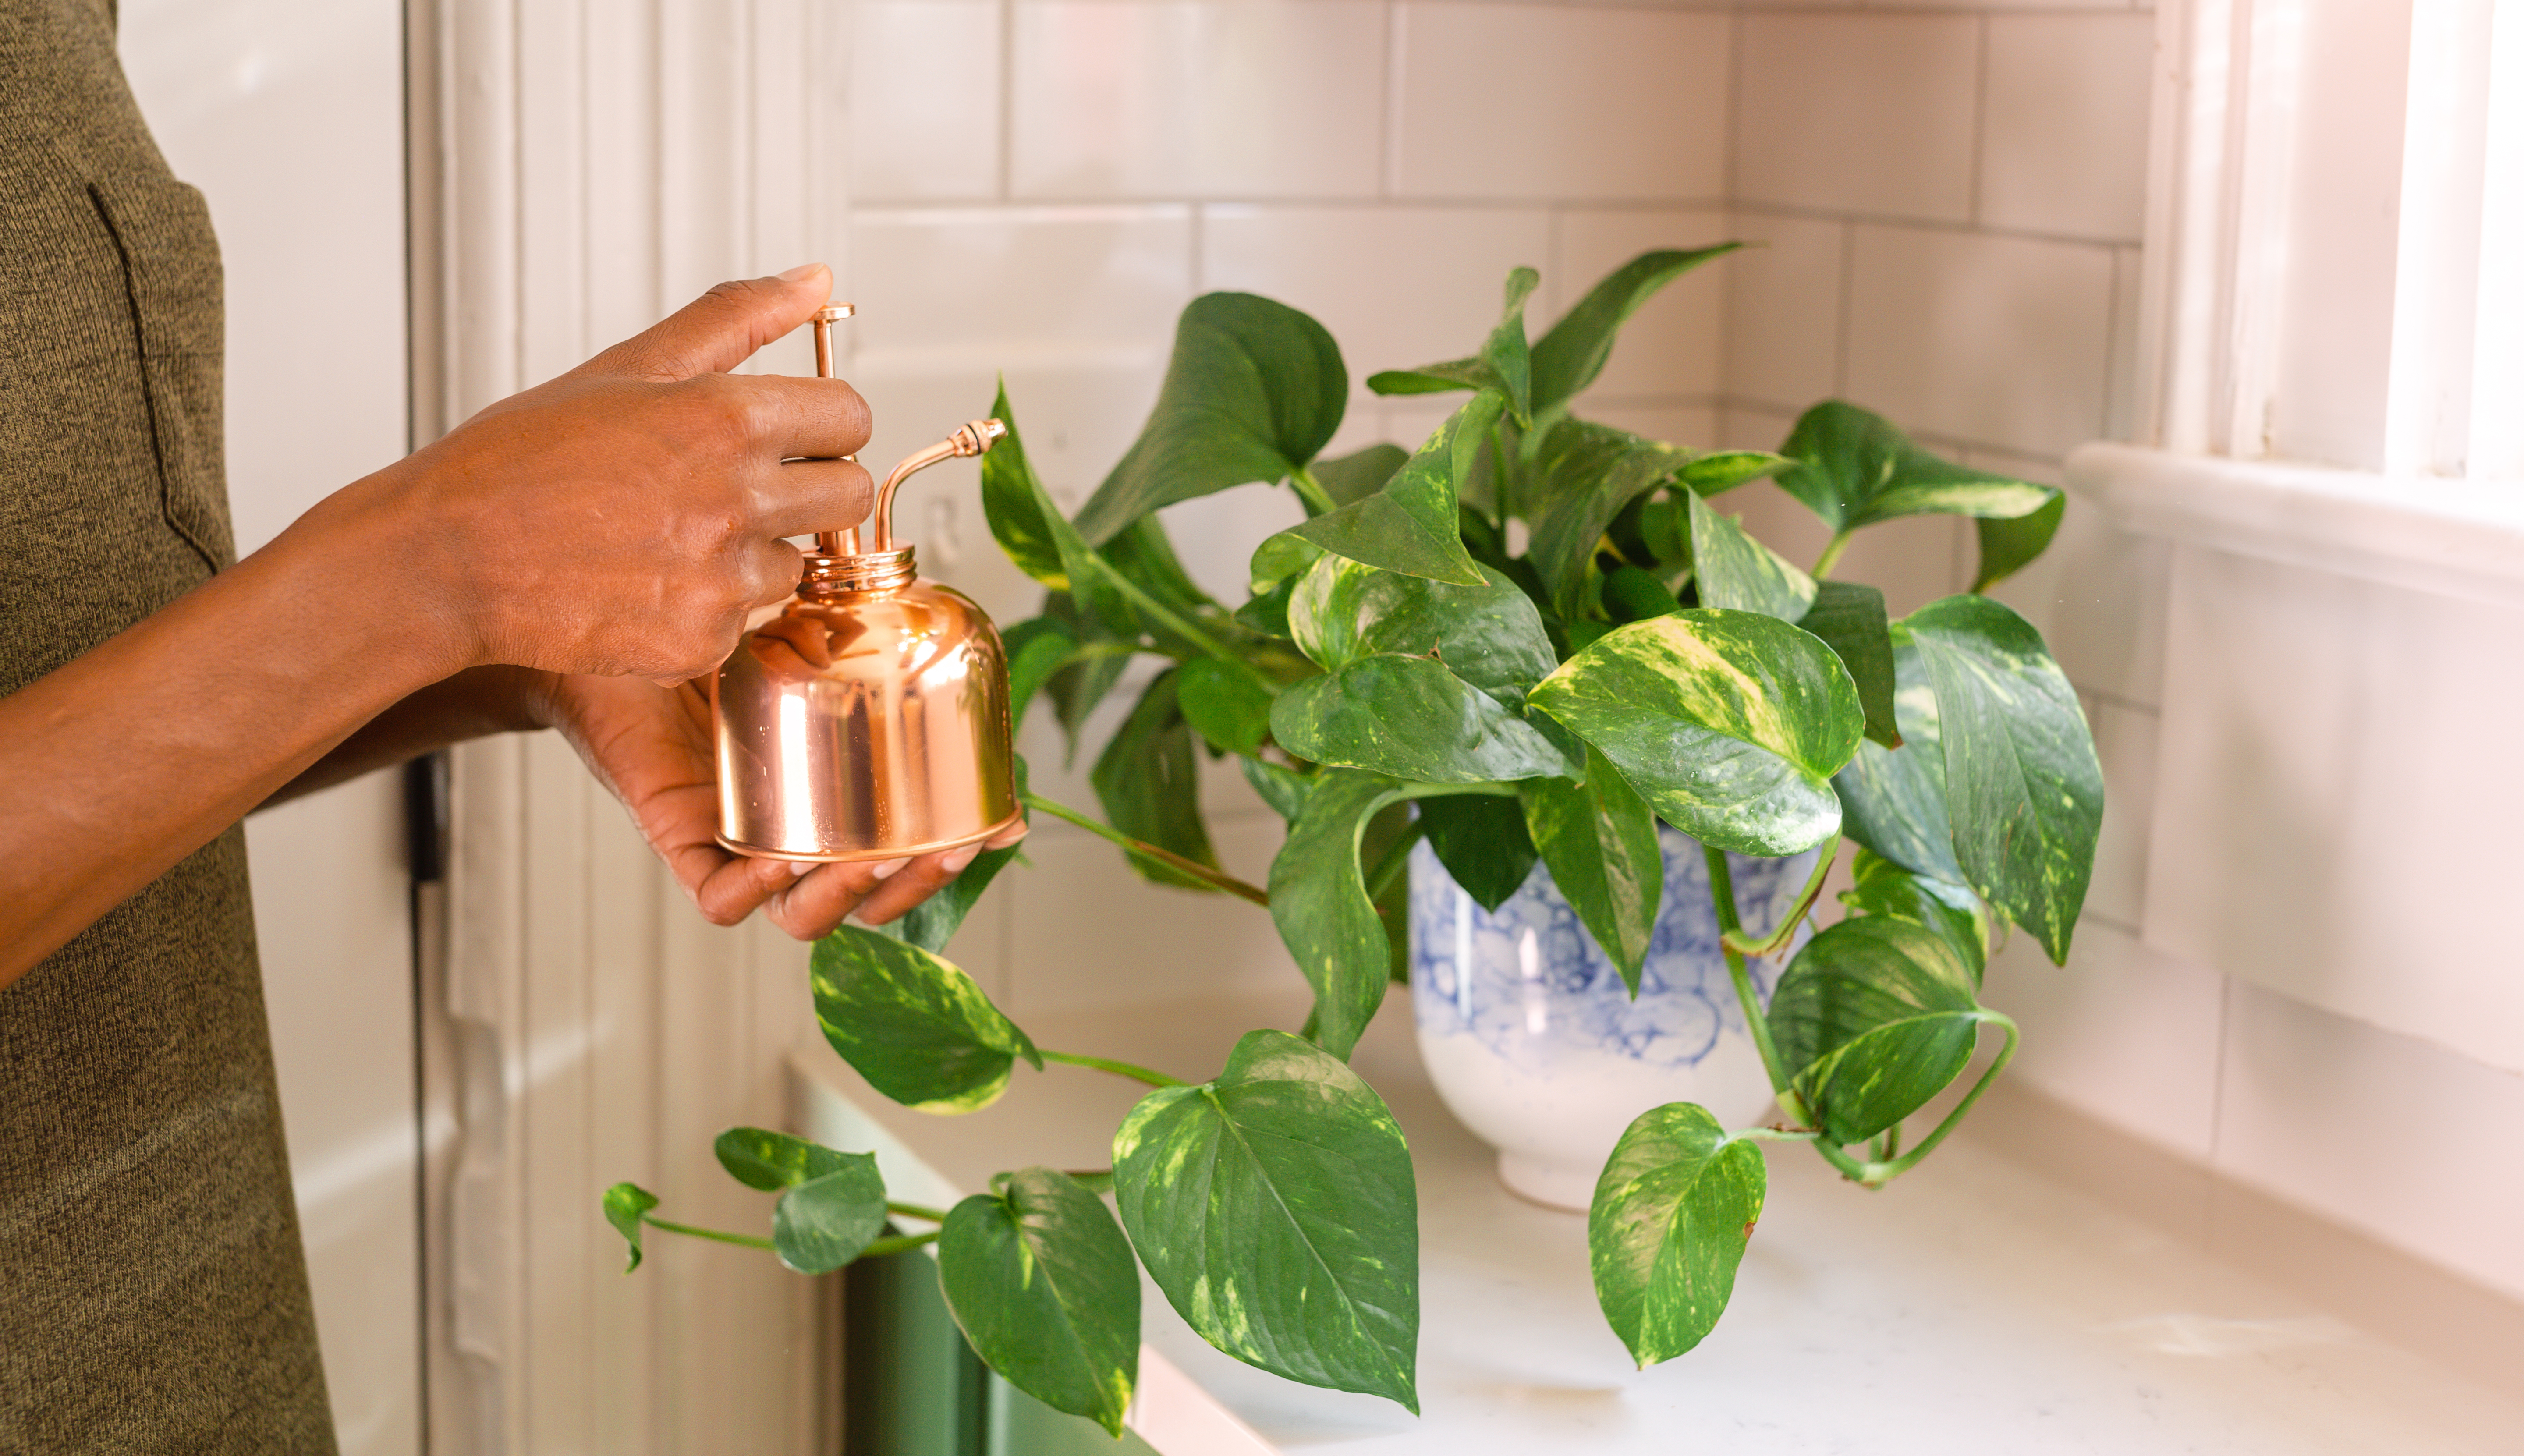 Hands with copper mister misting a pothos plant in a blue and white pot.